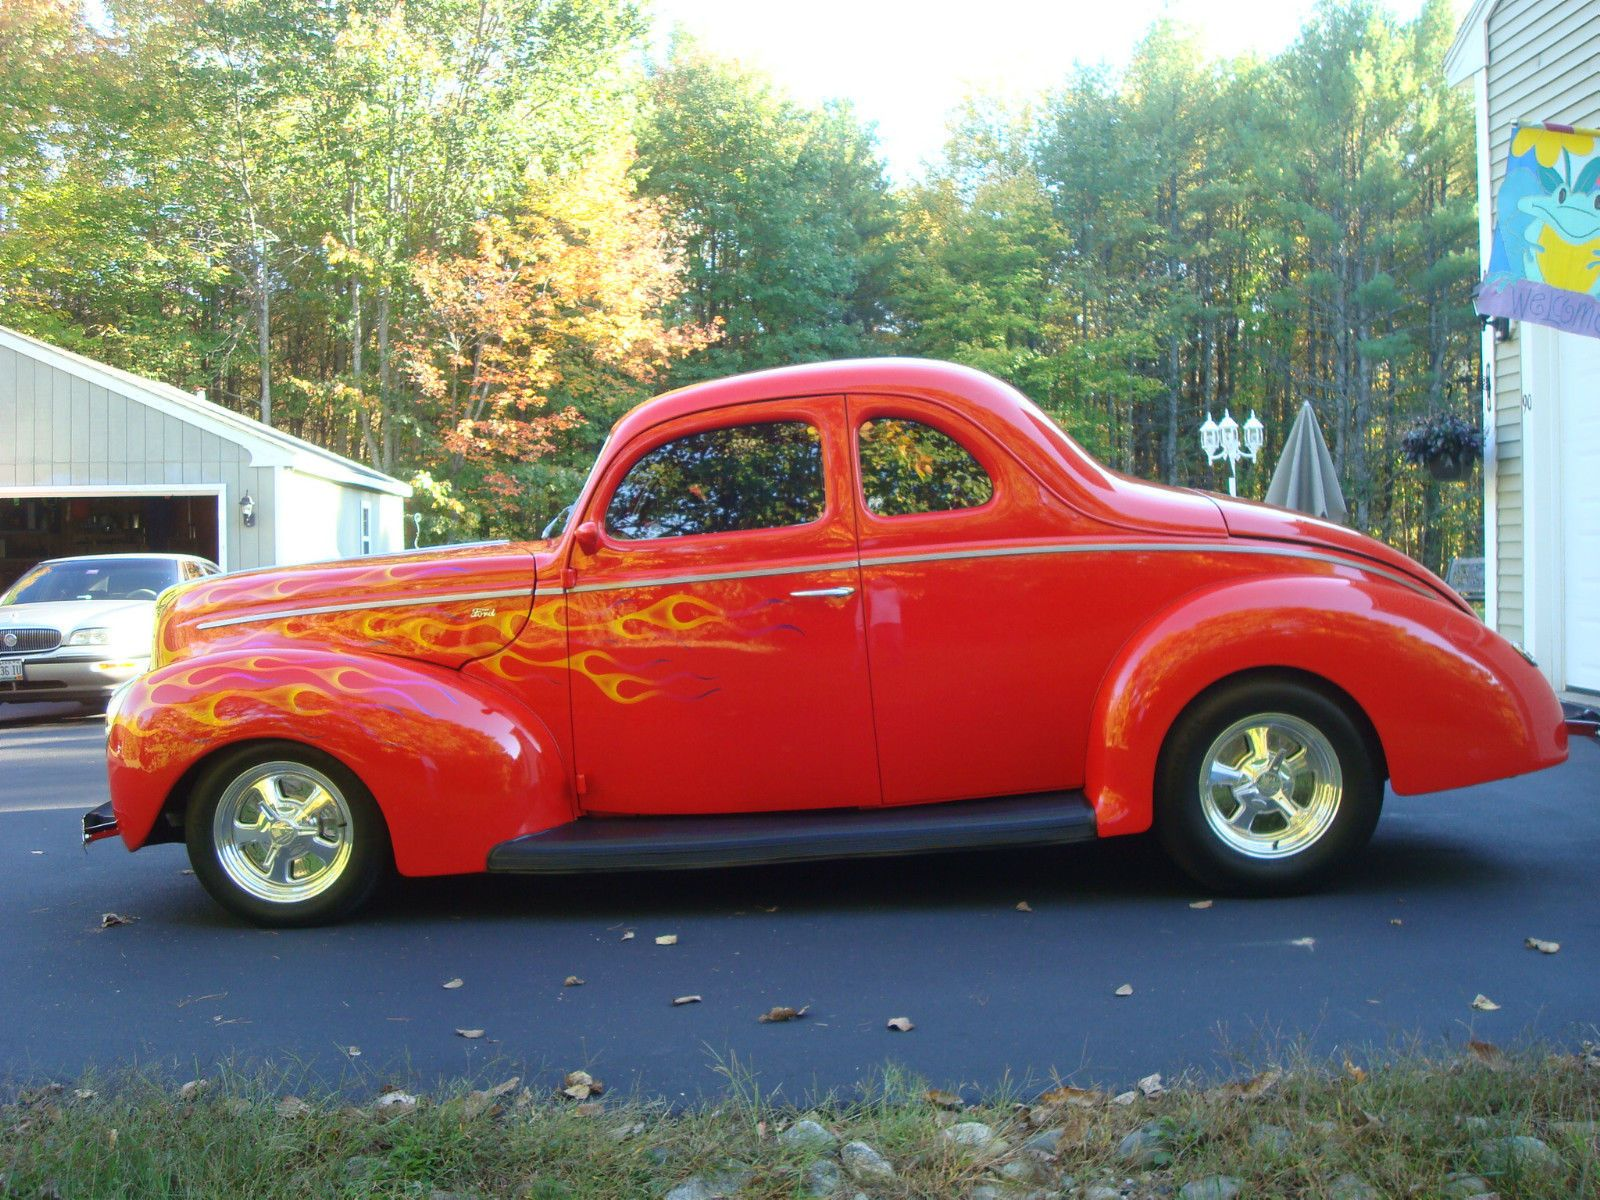 High End Build All Steel 1940 Ford Coupe Street Rod | American Hot ...